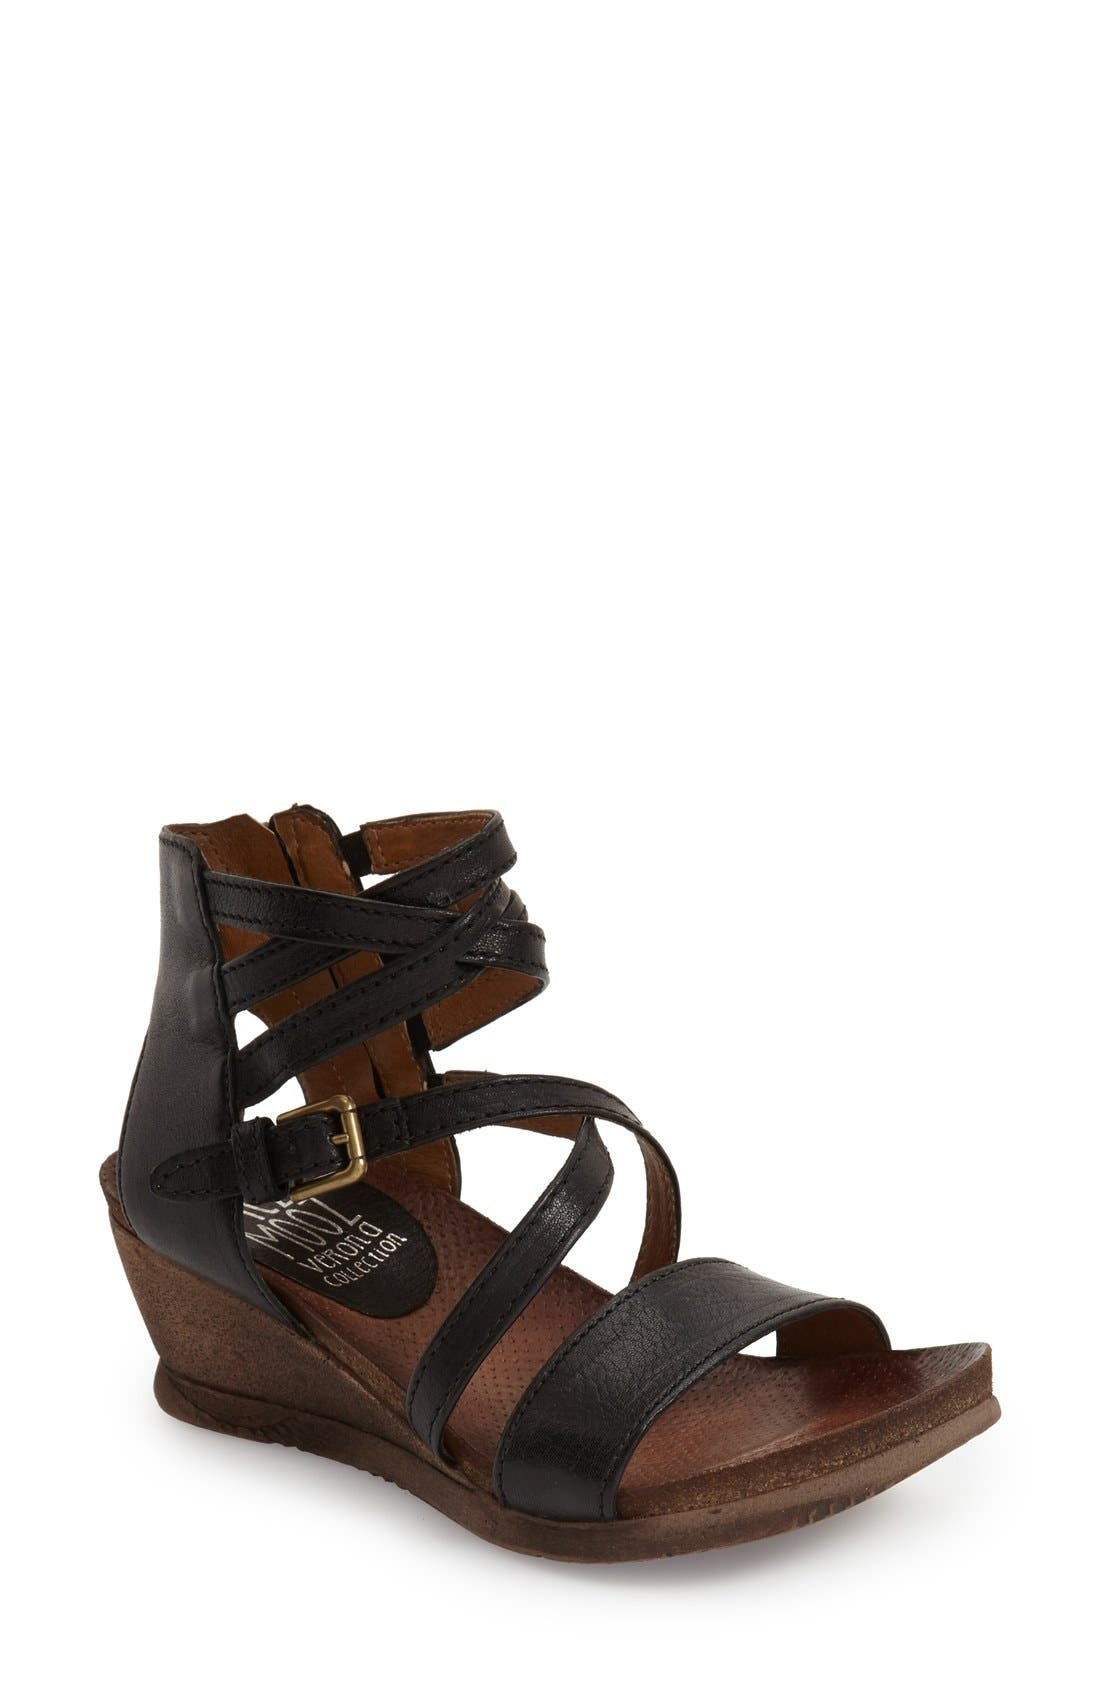 Miz Mooz 'Shay' Wedge Sandal (Women)